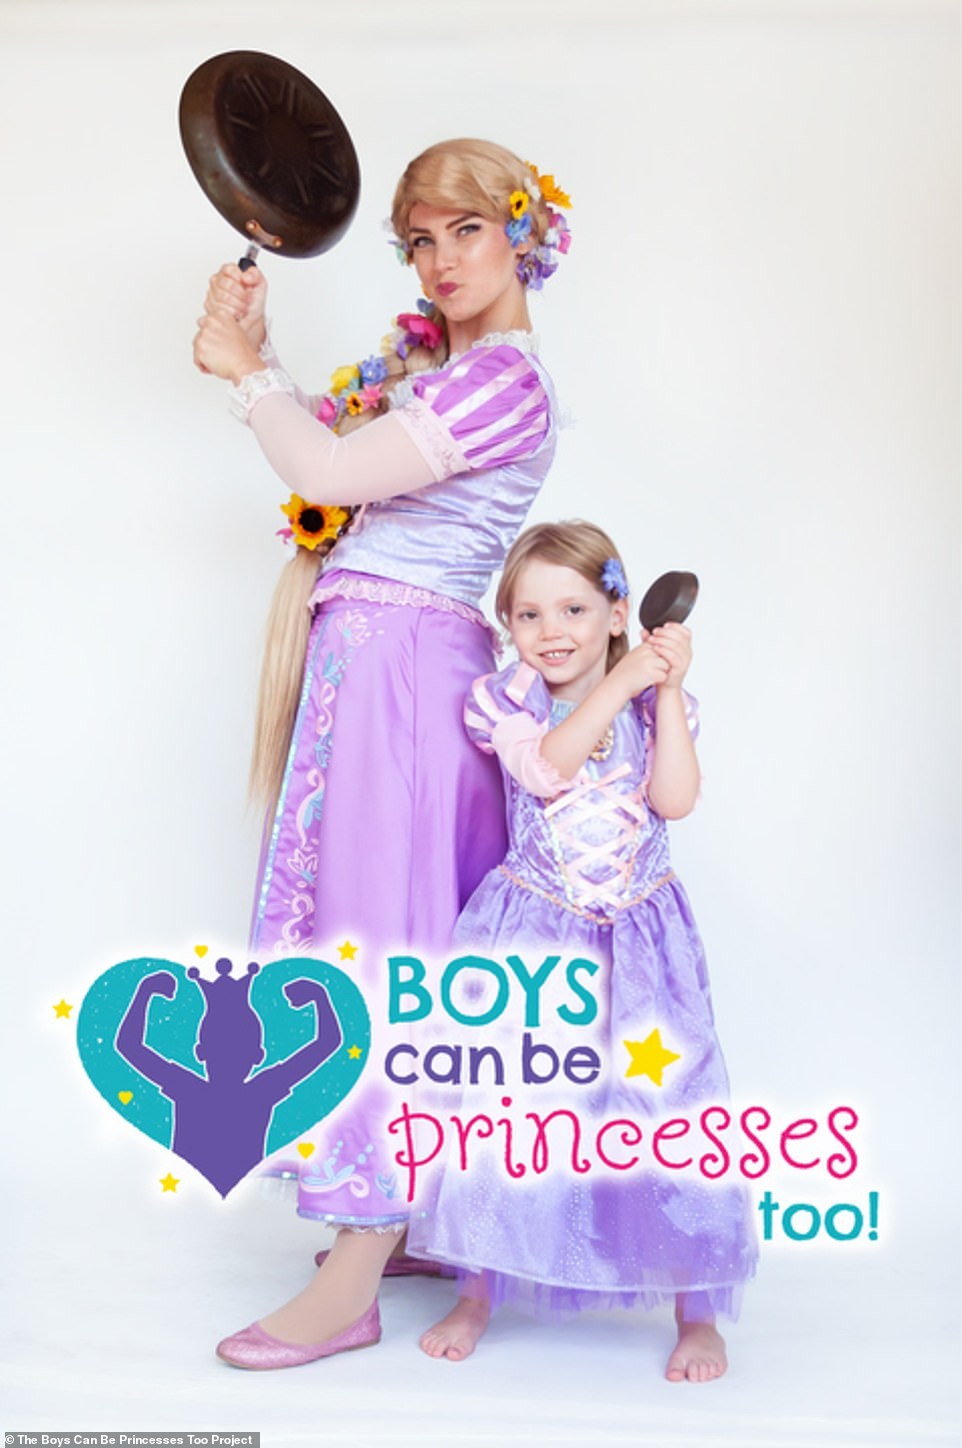 Boys can be Princesses too! 👸🏻👸🏼👸🏽